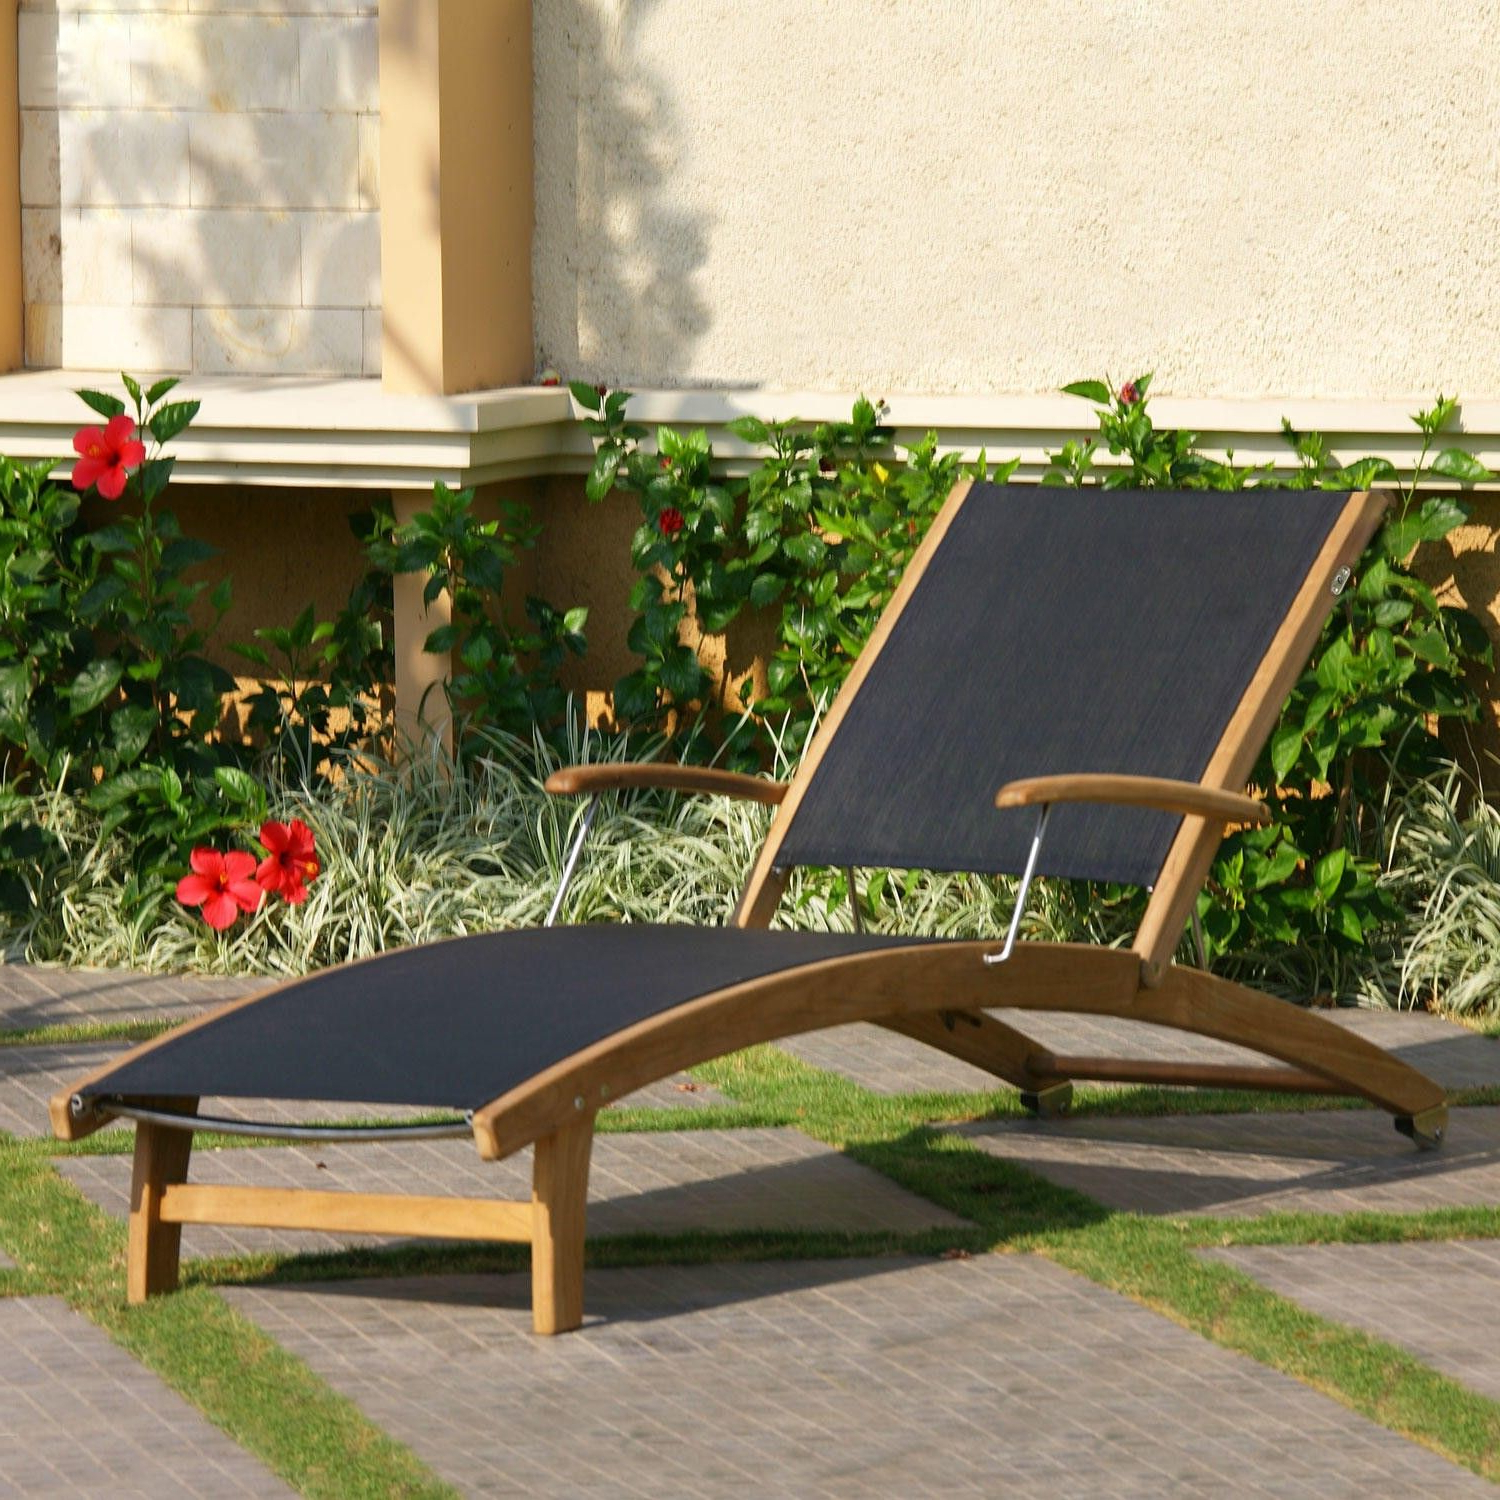 Rivera Teak Sling Lounge Chair – Outdoor Chaise Lounges For Well Known Outdoor Sling Eucalyptus Chaise Loungers (View 20 of 25)